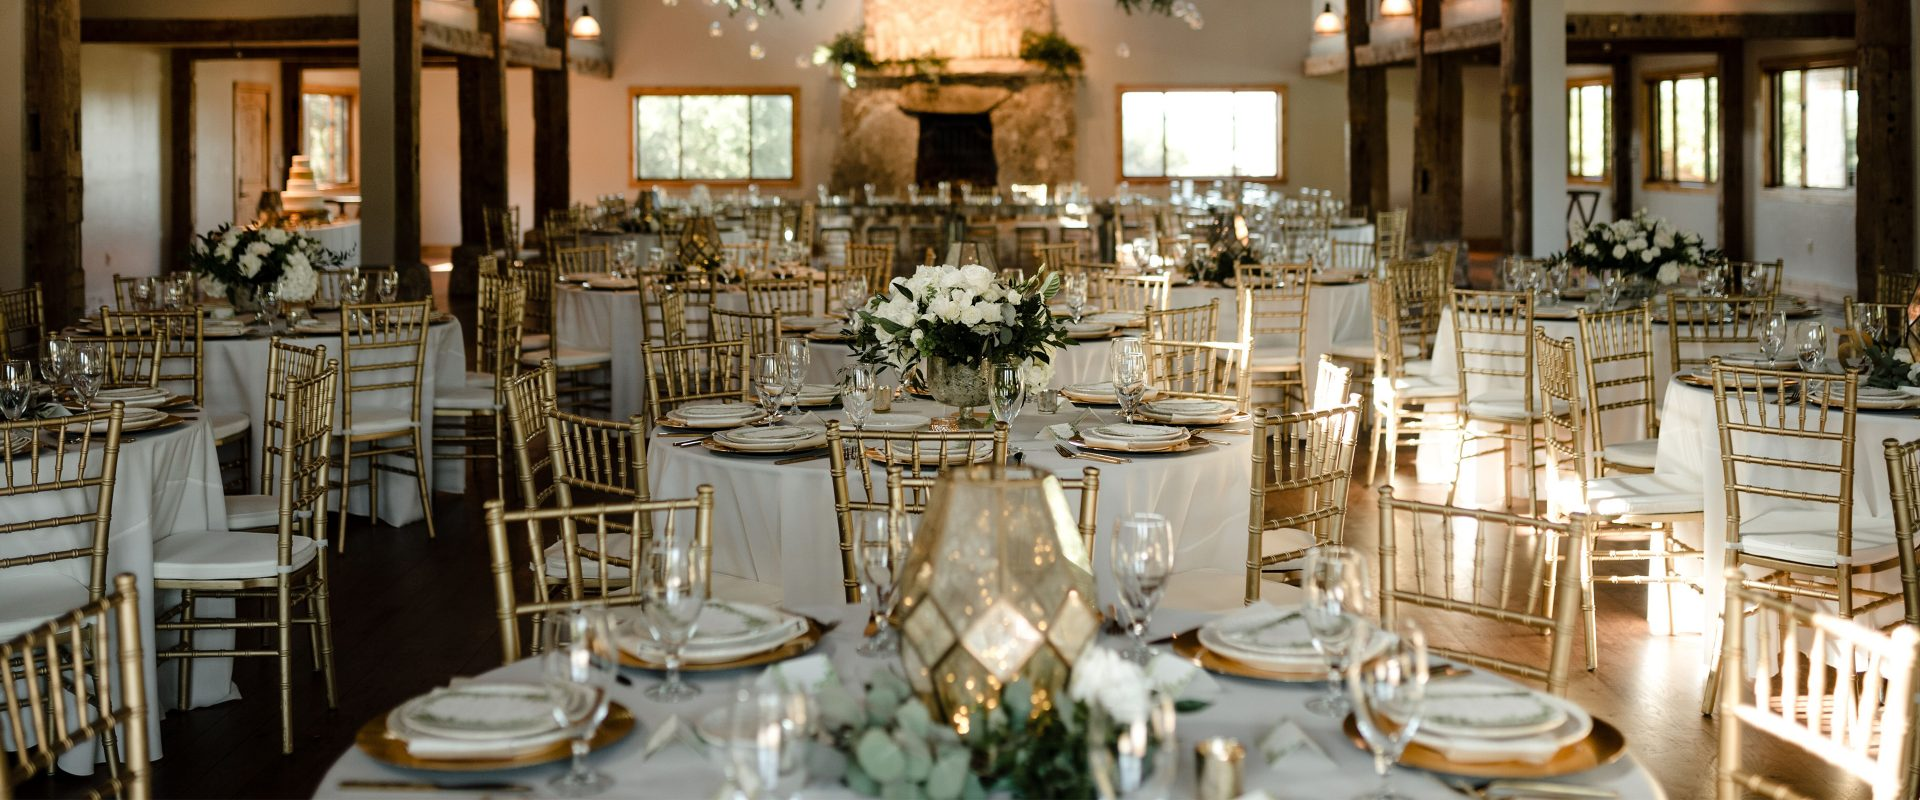 Whim Hospitality Catering Services In Austin Tx